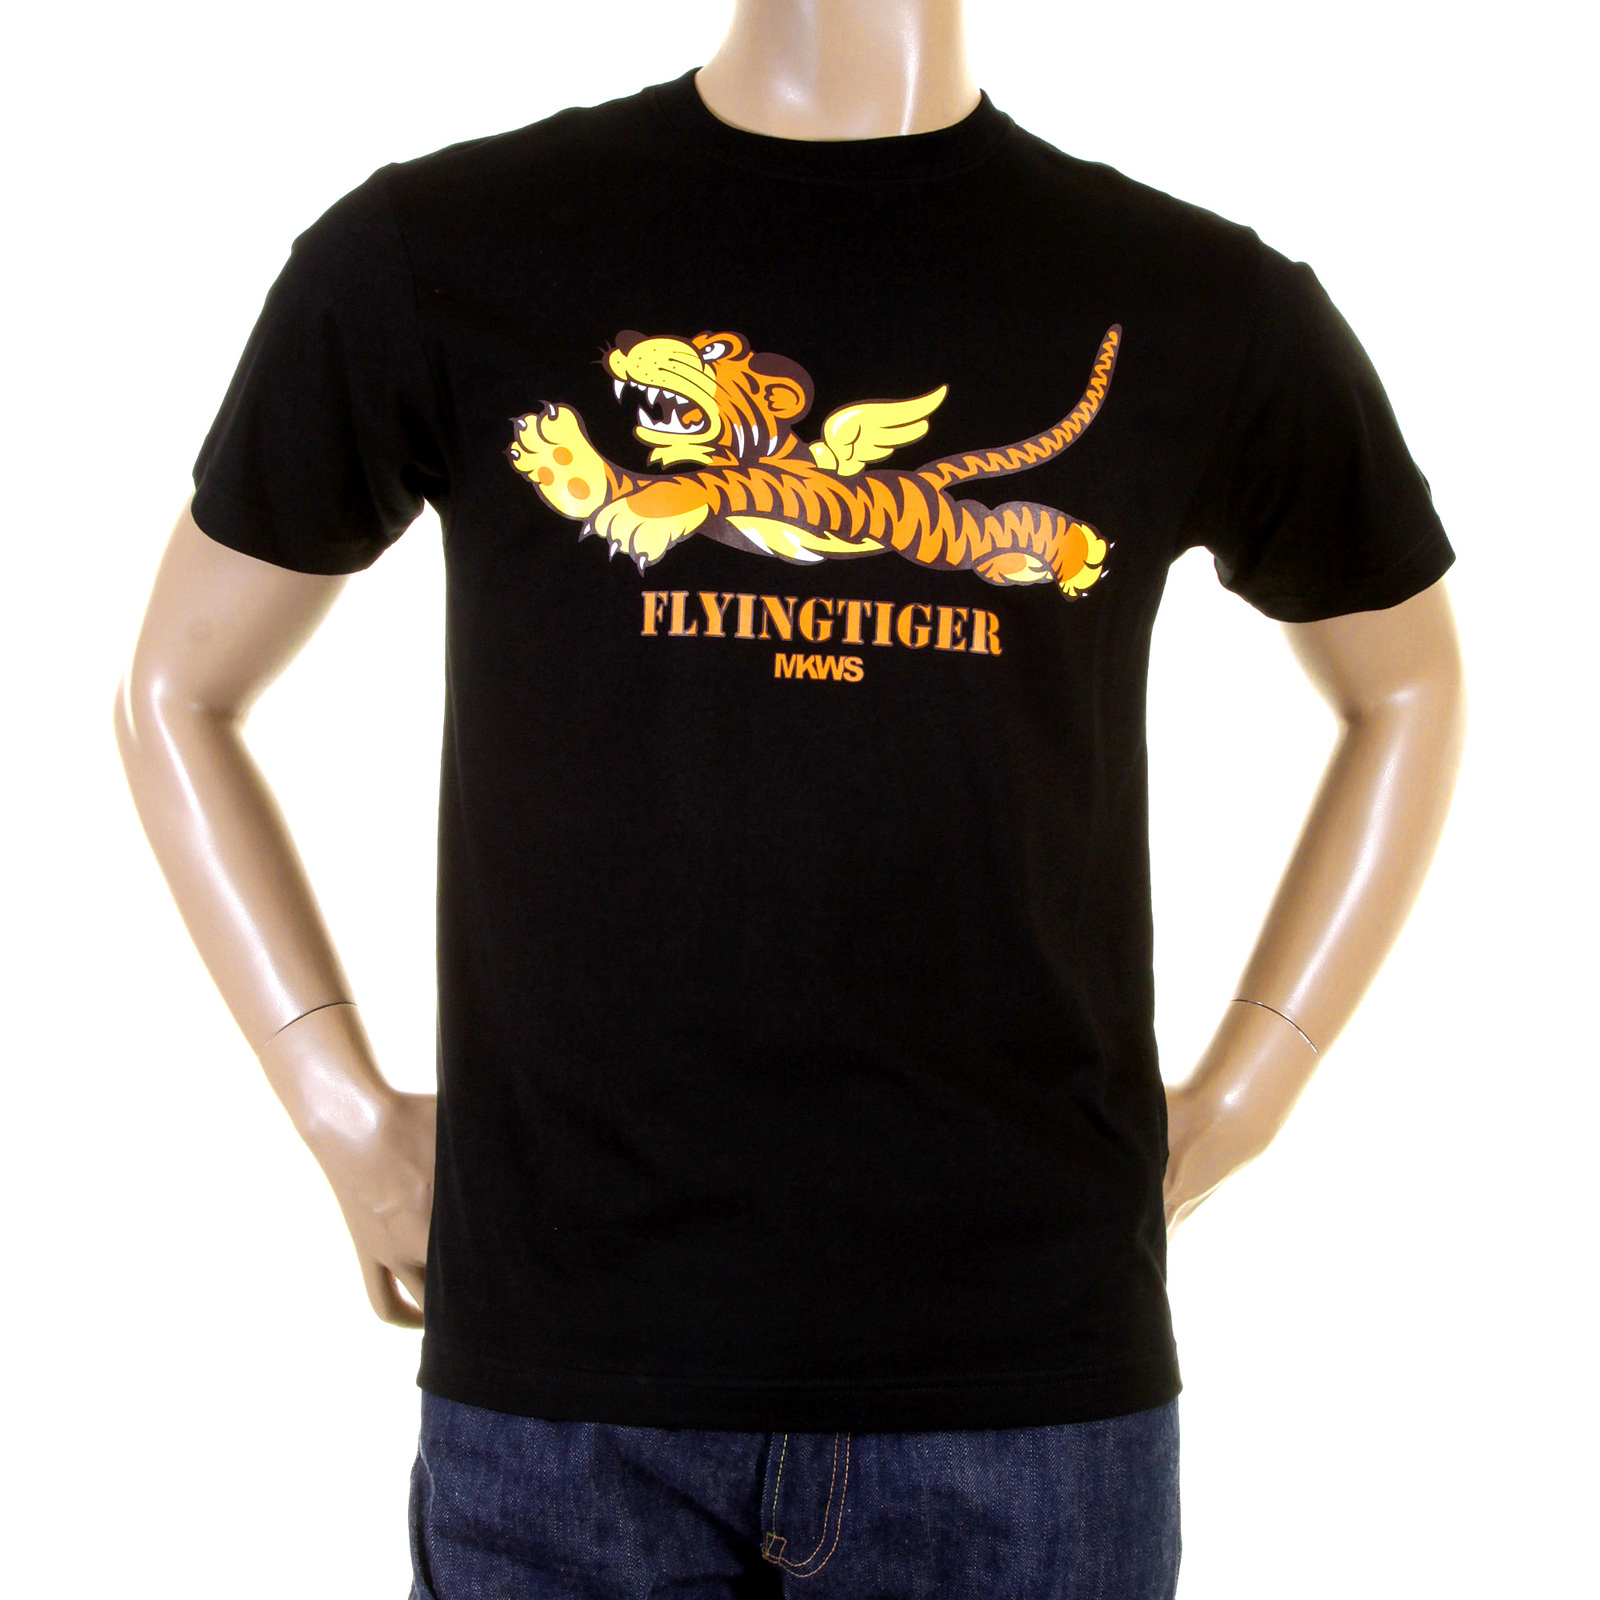 Buy Splendid Design 100 Cotton T Shirt From Rmc Jeans